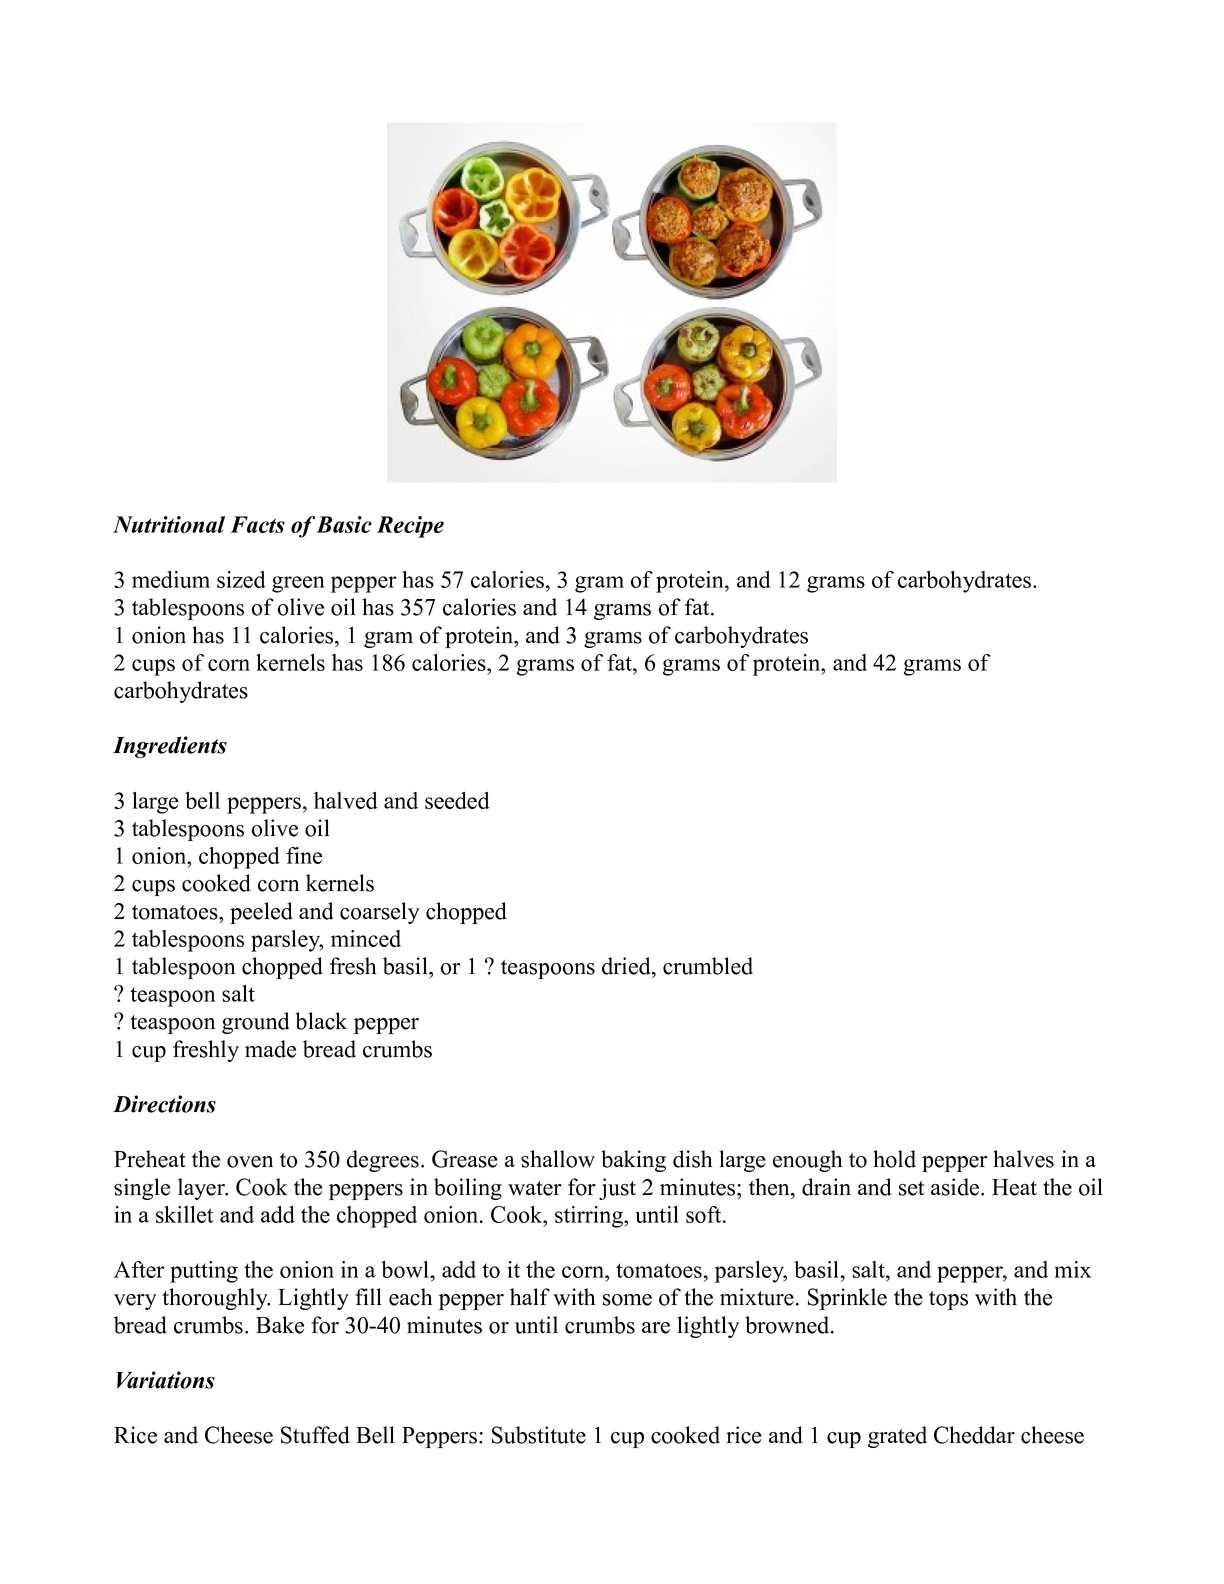 Calaméo - Stuffed Bell Peppers Basic Recipe with Variations